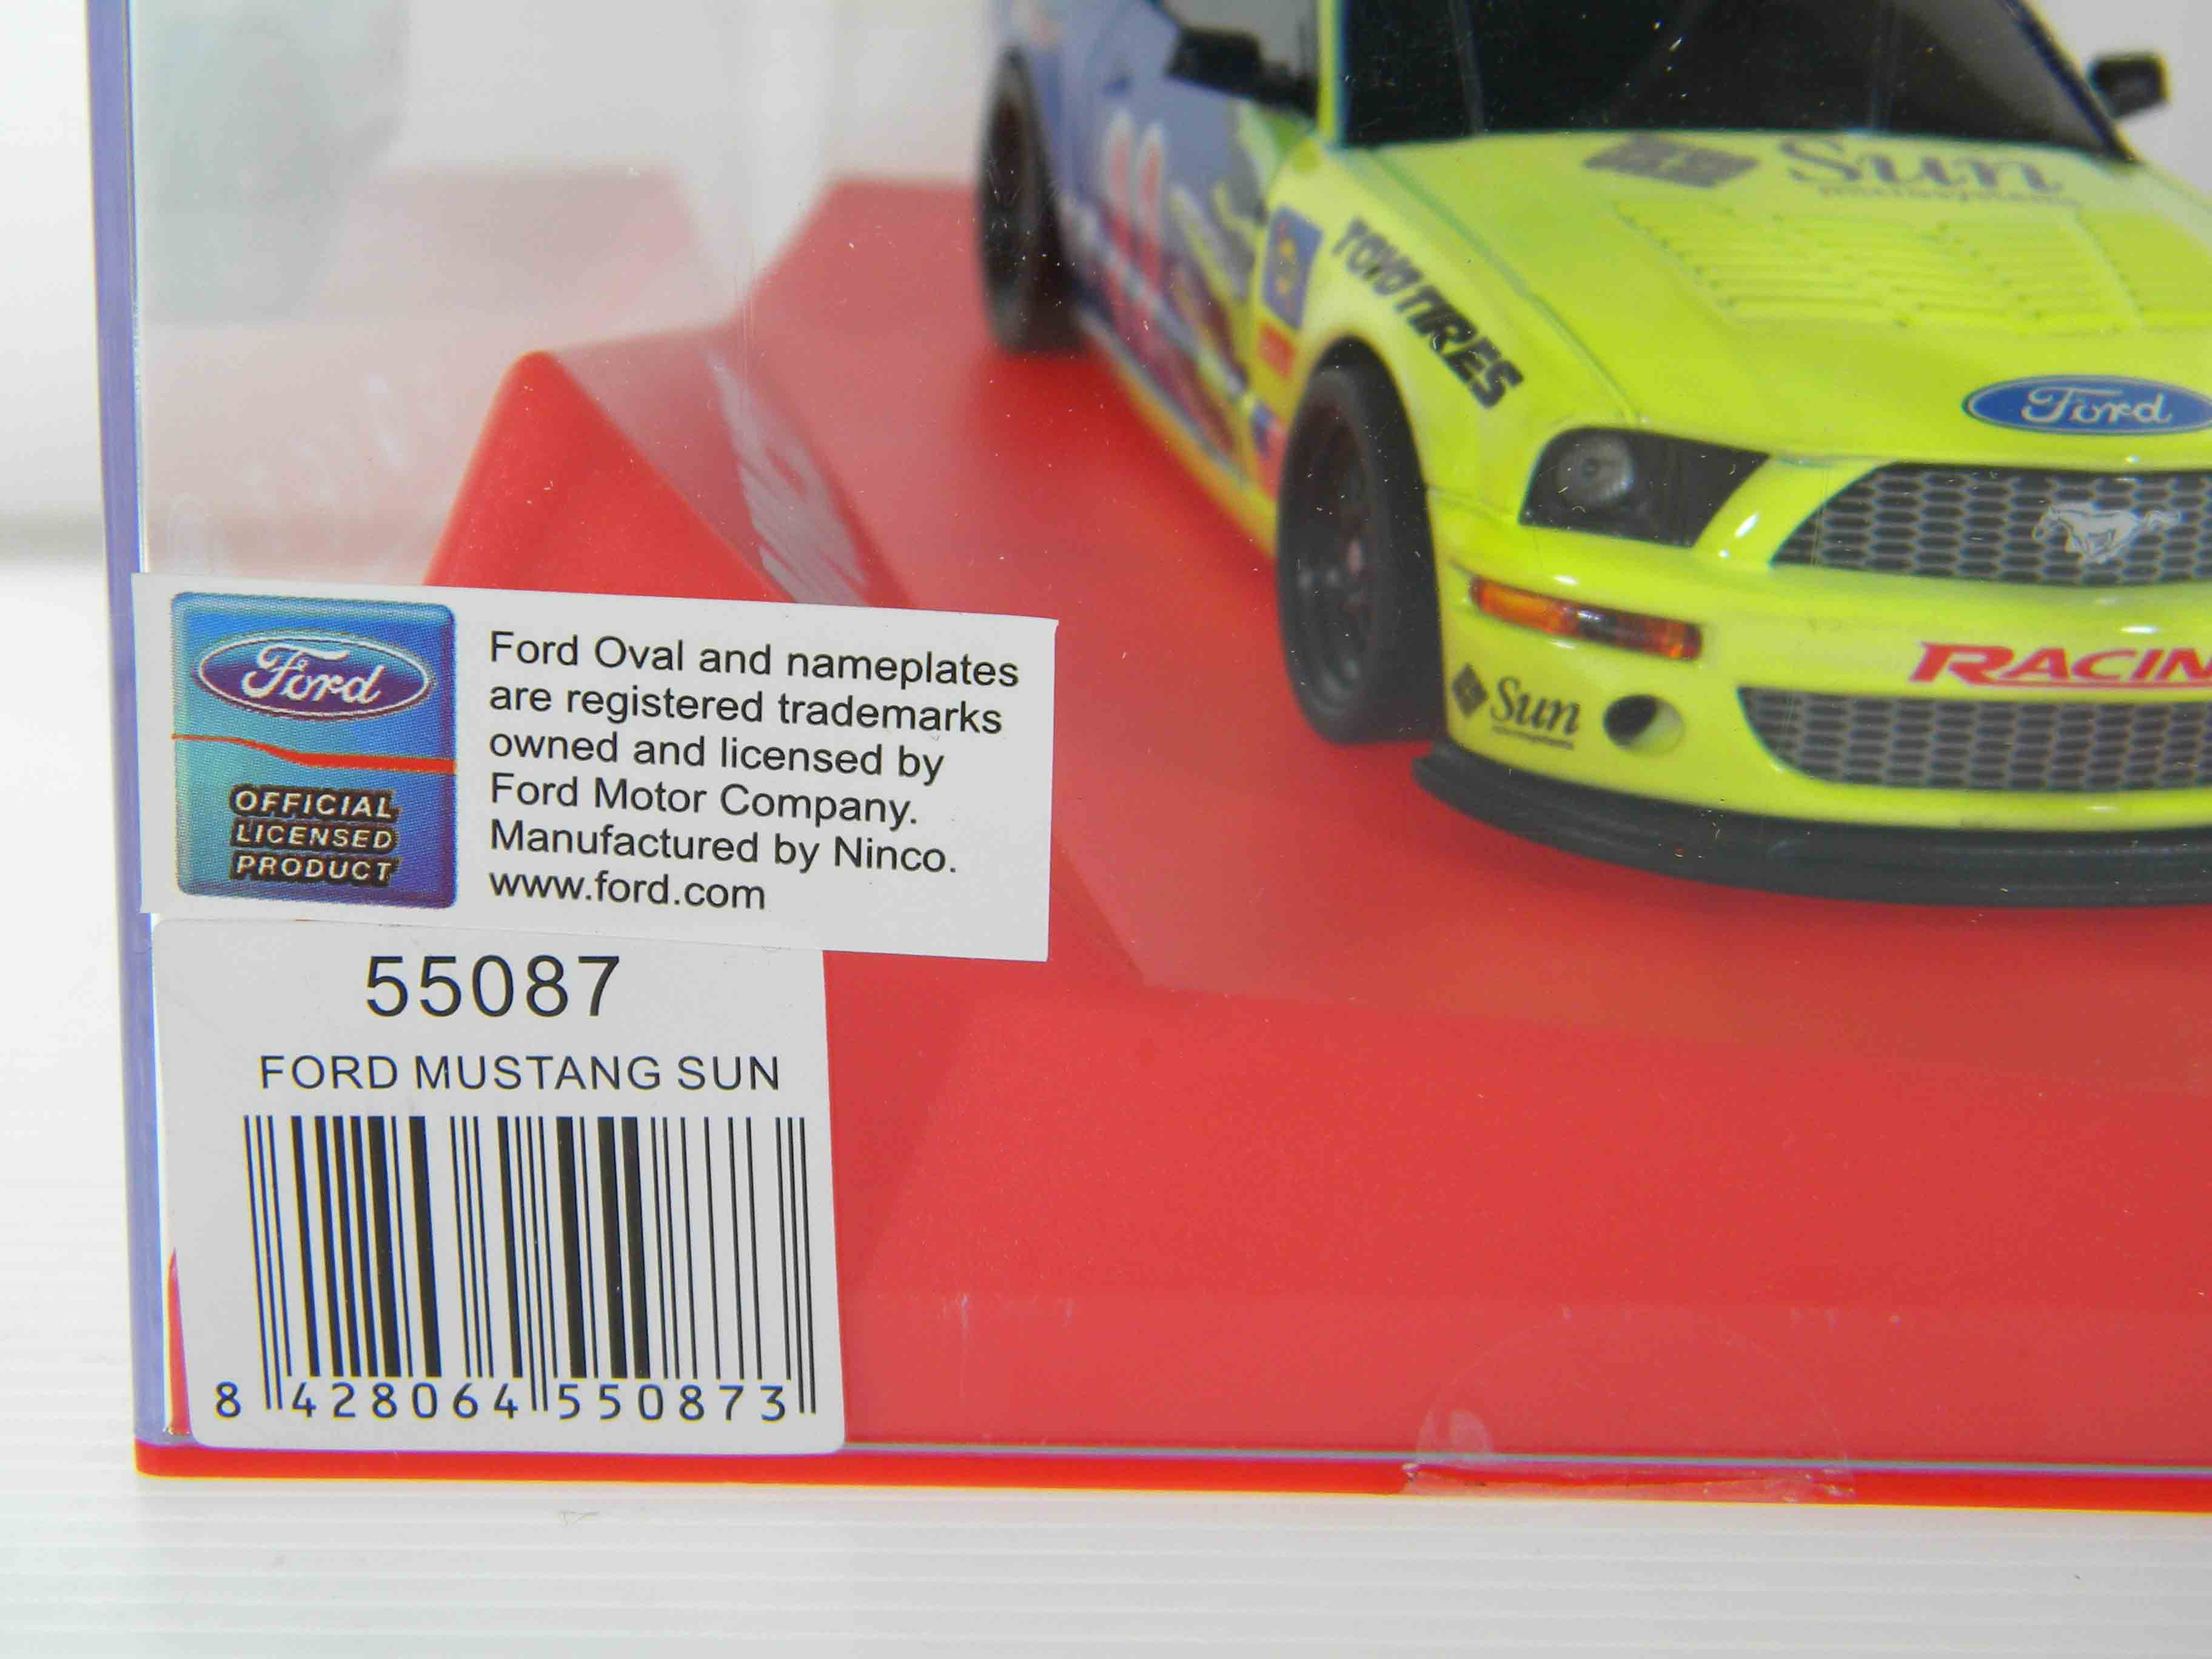 Ford Mustang (55087